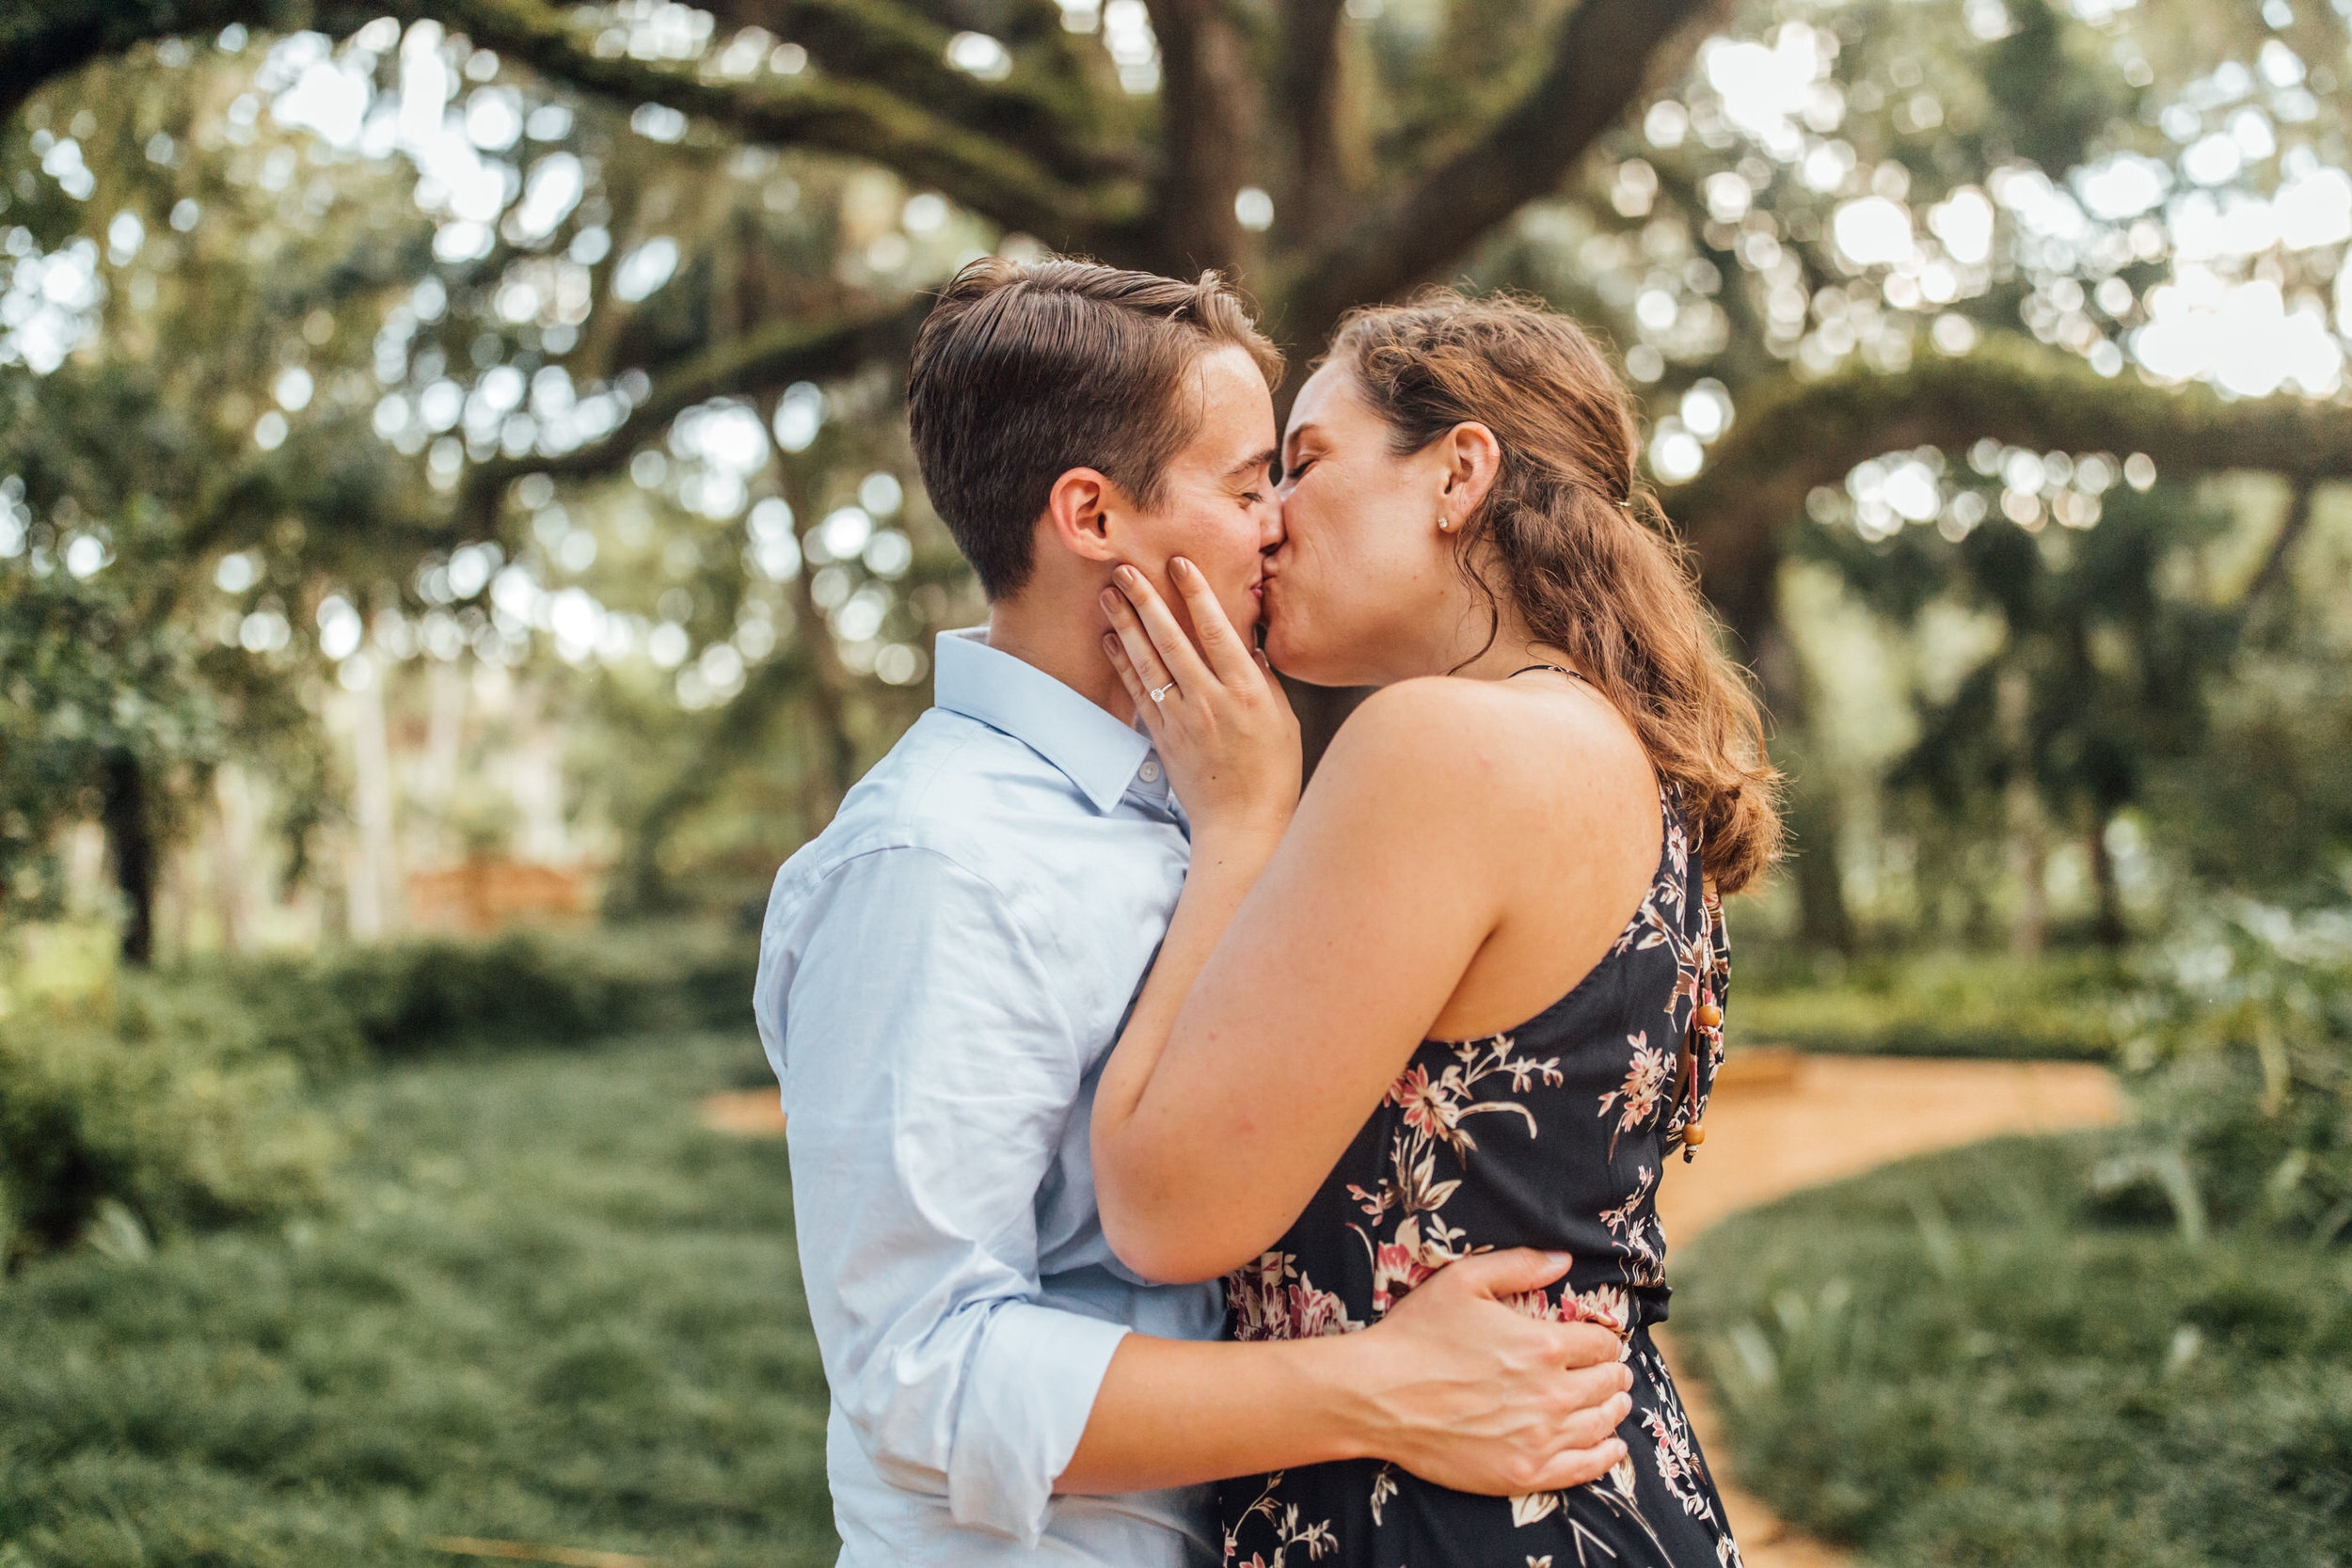 Orlando Natural Forest State Park Engagement Photos- Romantic LGBT Engaged Couples photos97.jpg